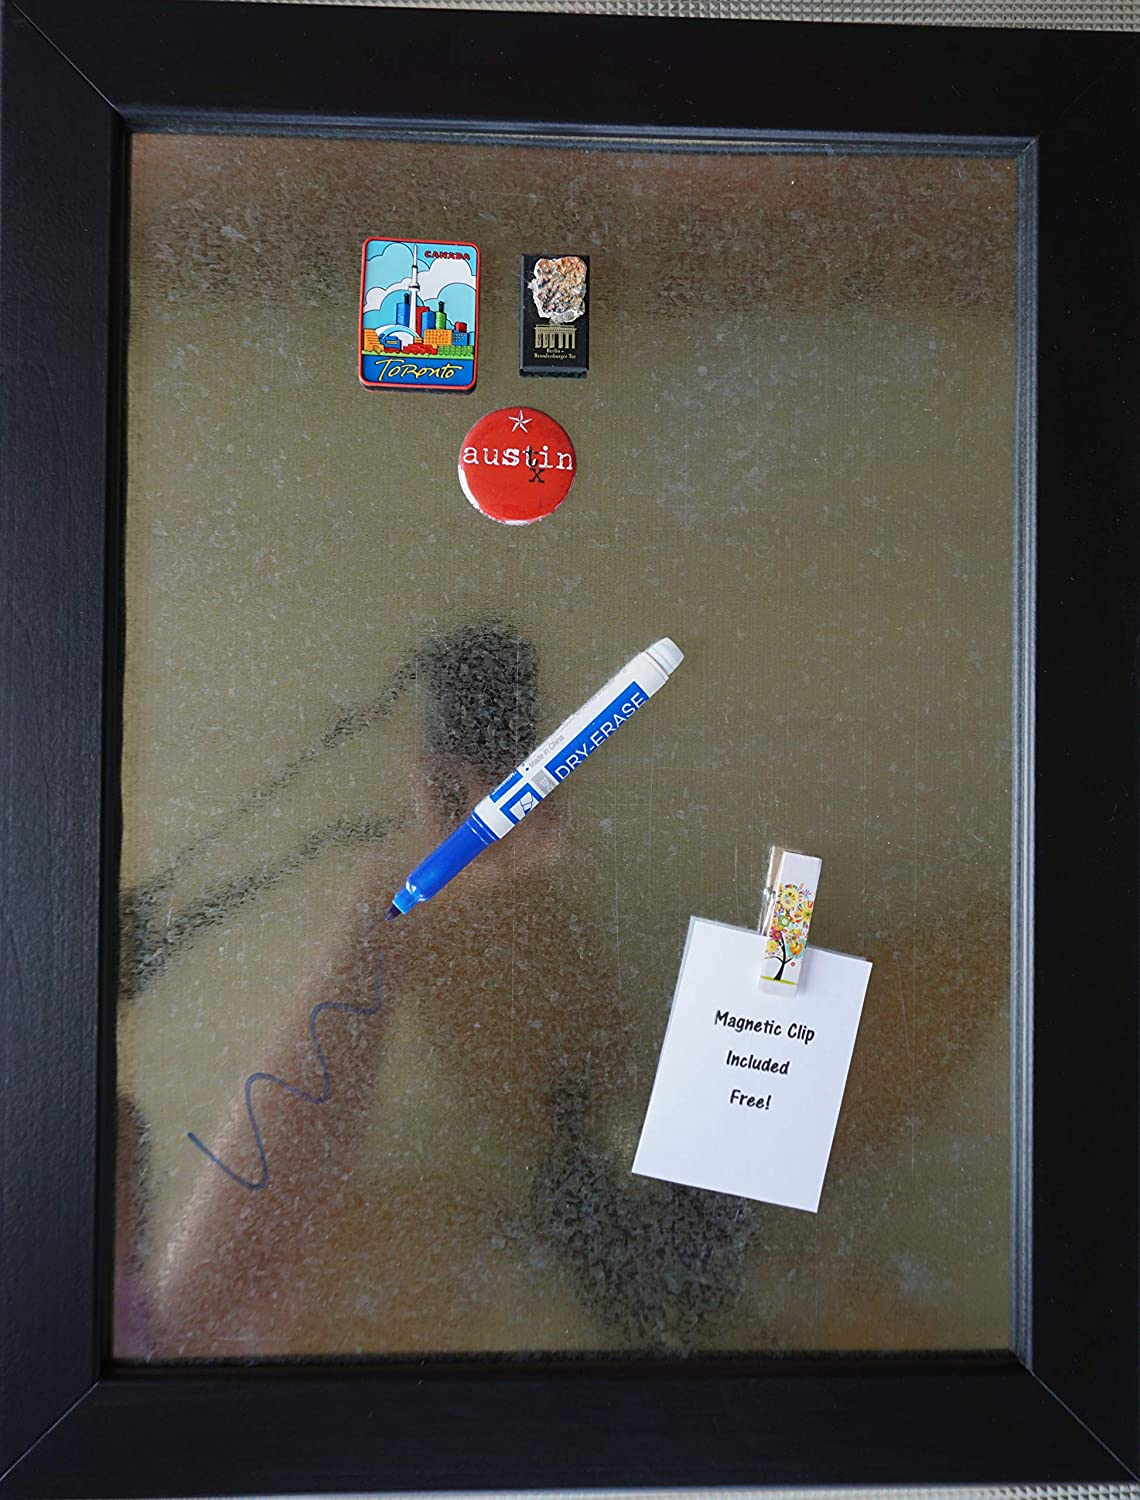 Art Prints Inc Magnetic Dry Erase Memo Board w/Free Magnet | Galvanized Black Wood Frame | Decoration & Wall Art Indoor & Outdoor Use | Complete Wall Organization Solution | 14x18 Great Gift!